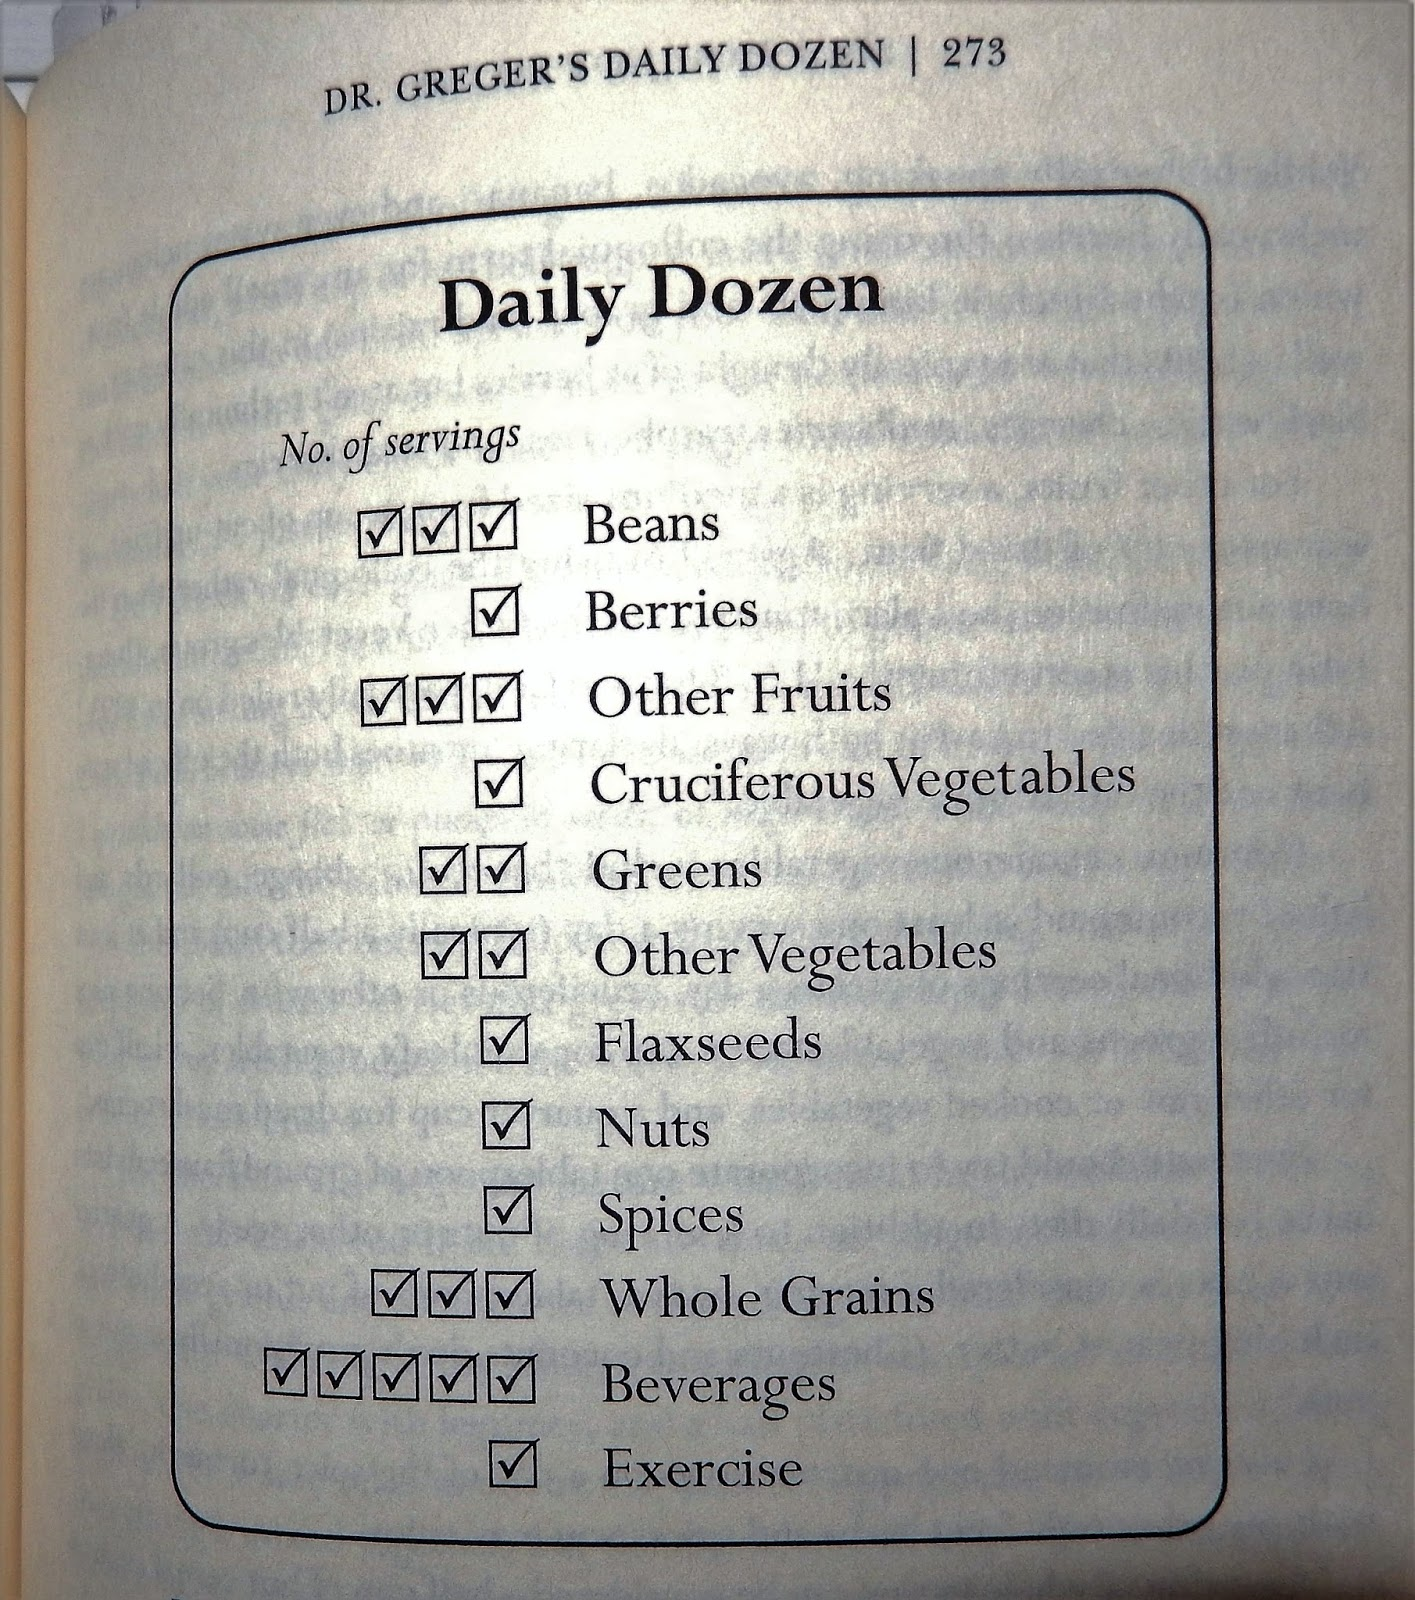 image relating to Dr Greger's Daily Dozen Printable named dr greger everyday dozen -